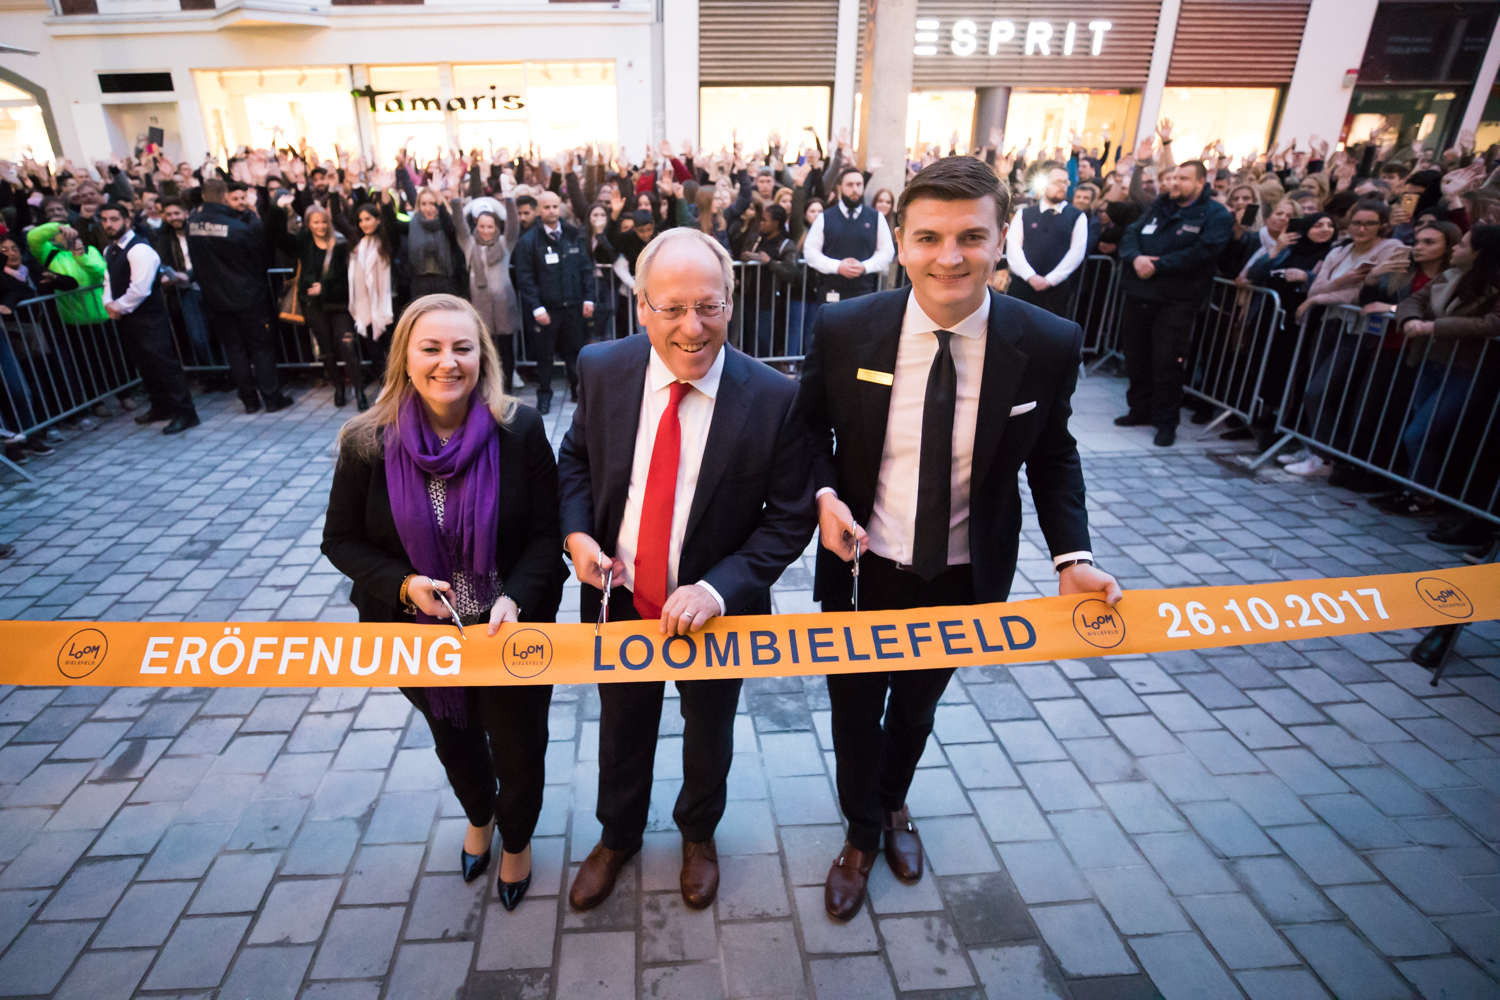 Bielefeld Shopping Loom Bielefeld New Shopping Center Opens On Thursday Ece Real